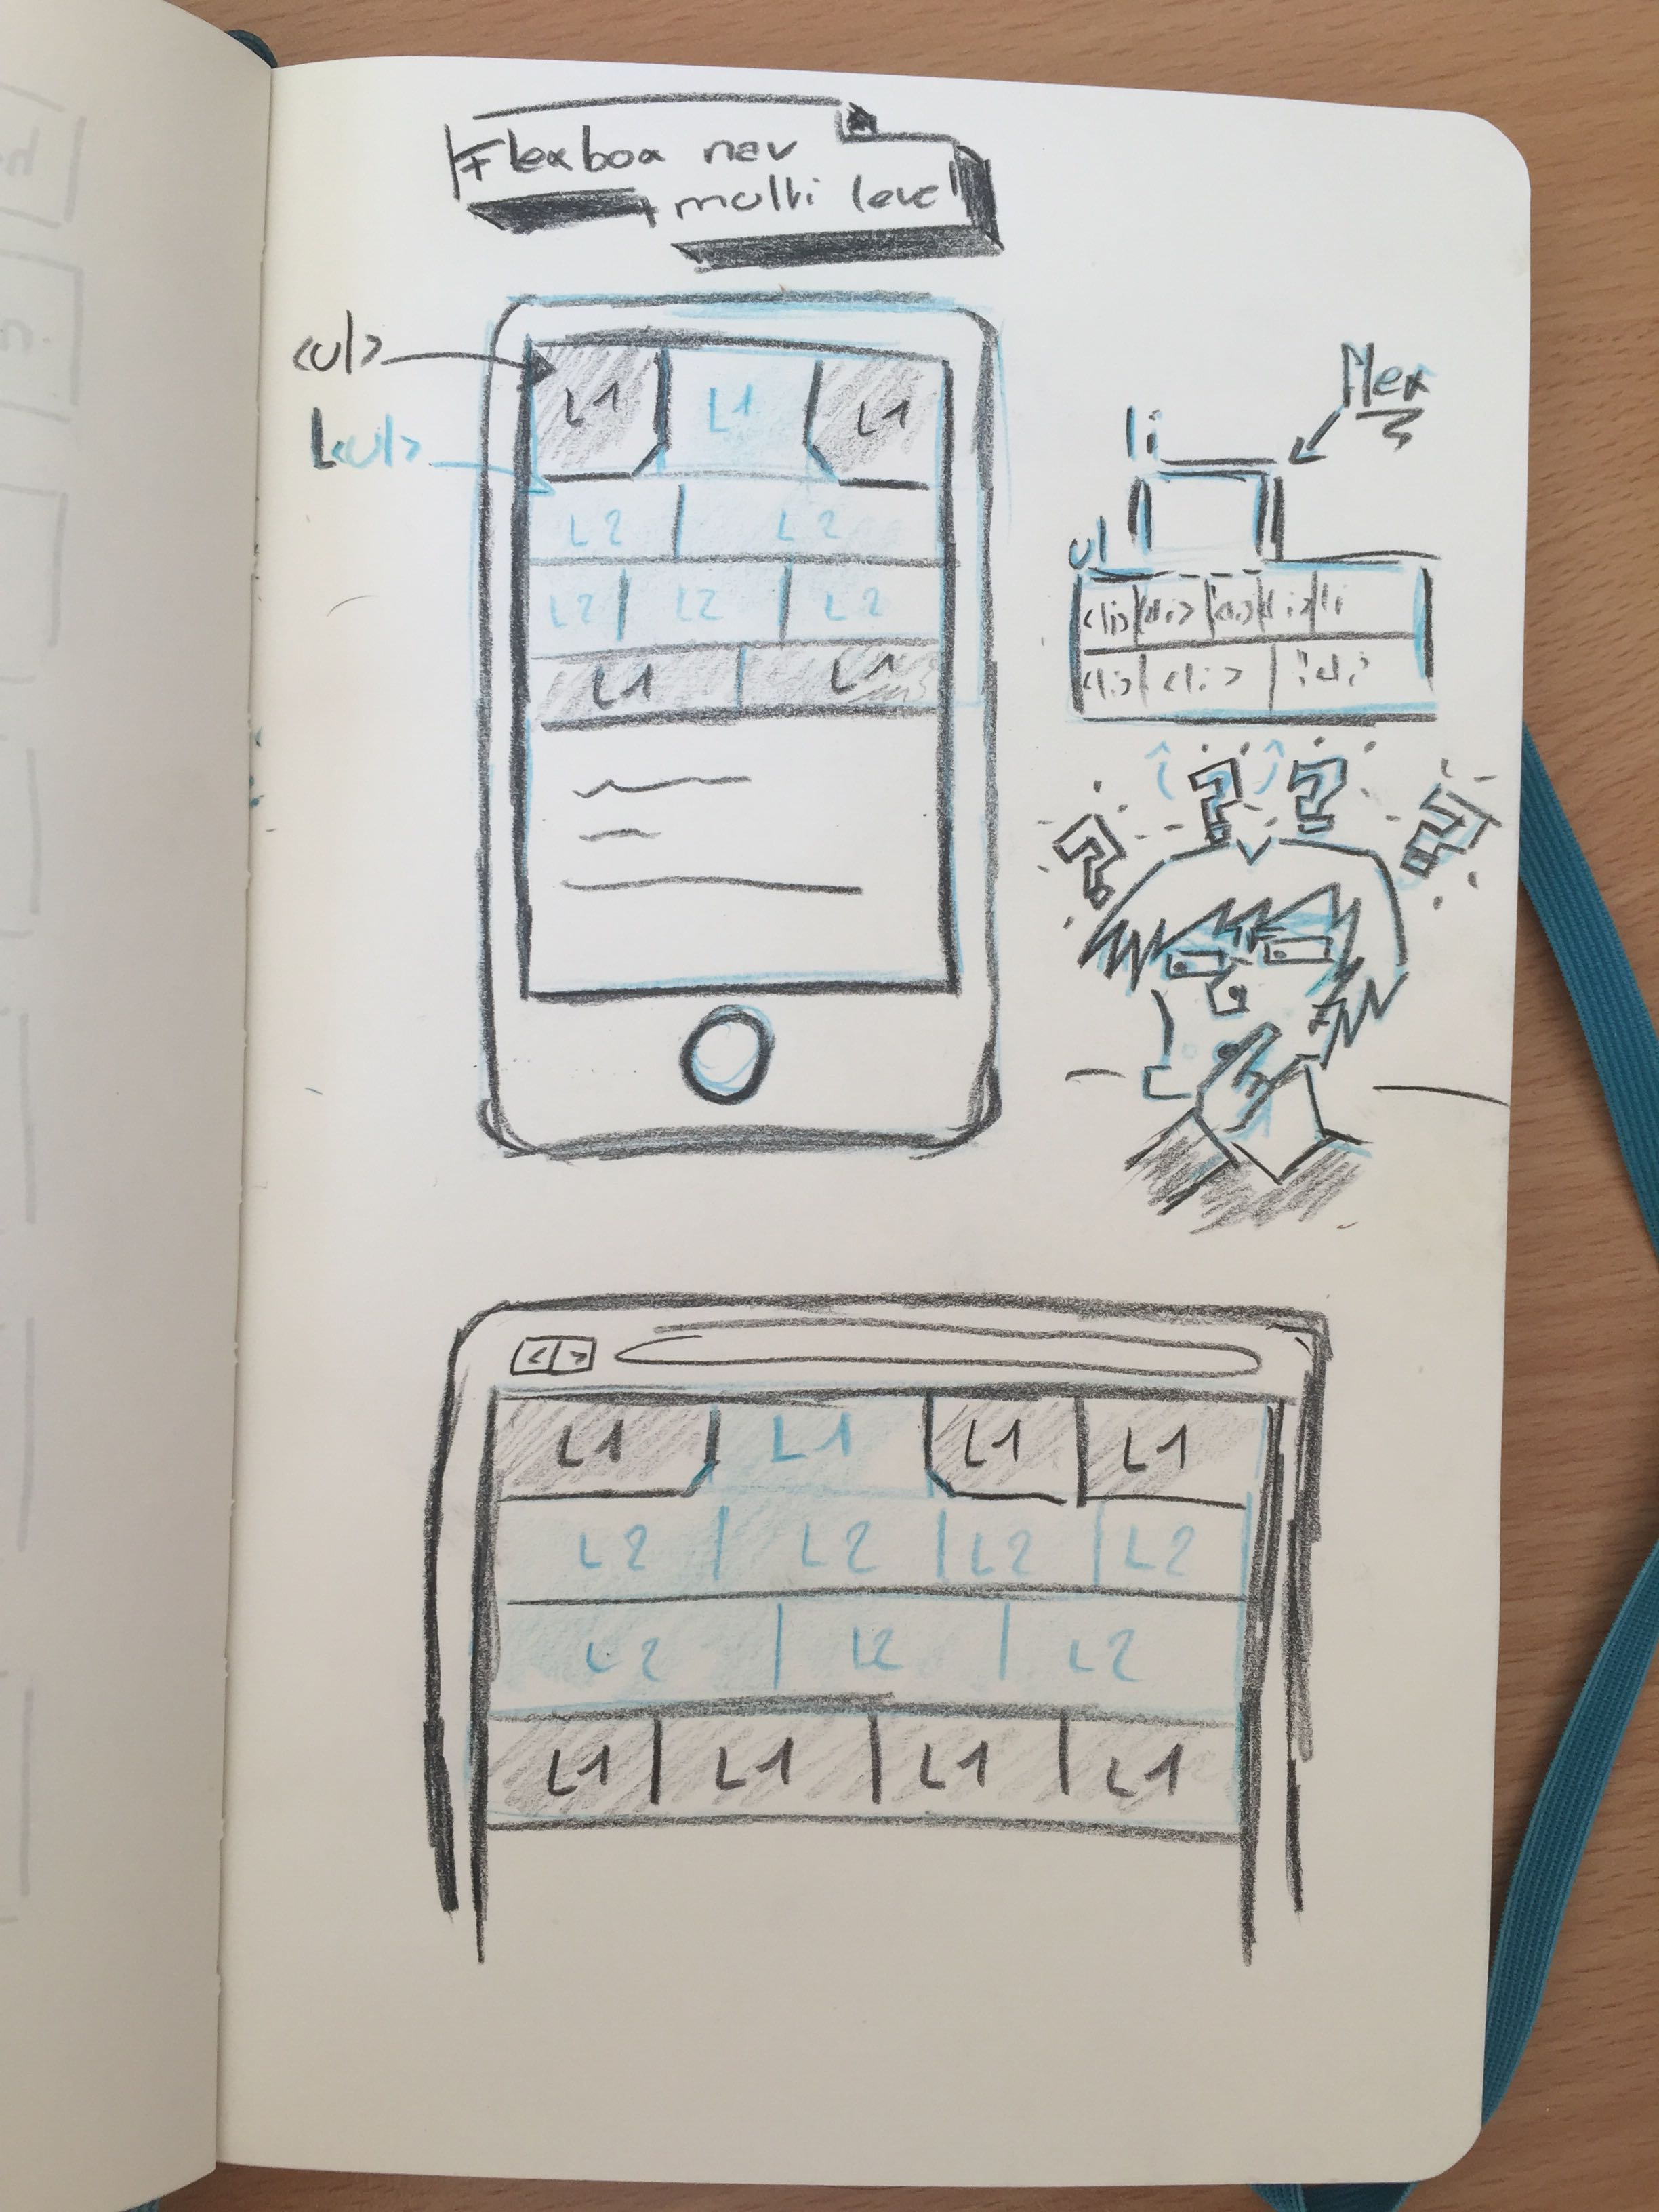 My notes about a sub-navigation